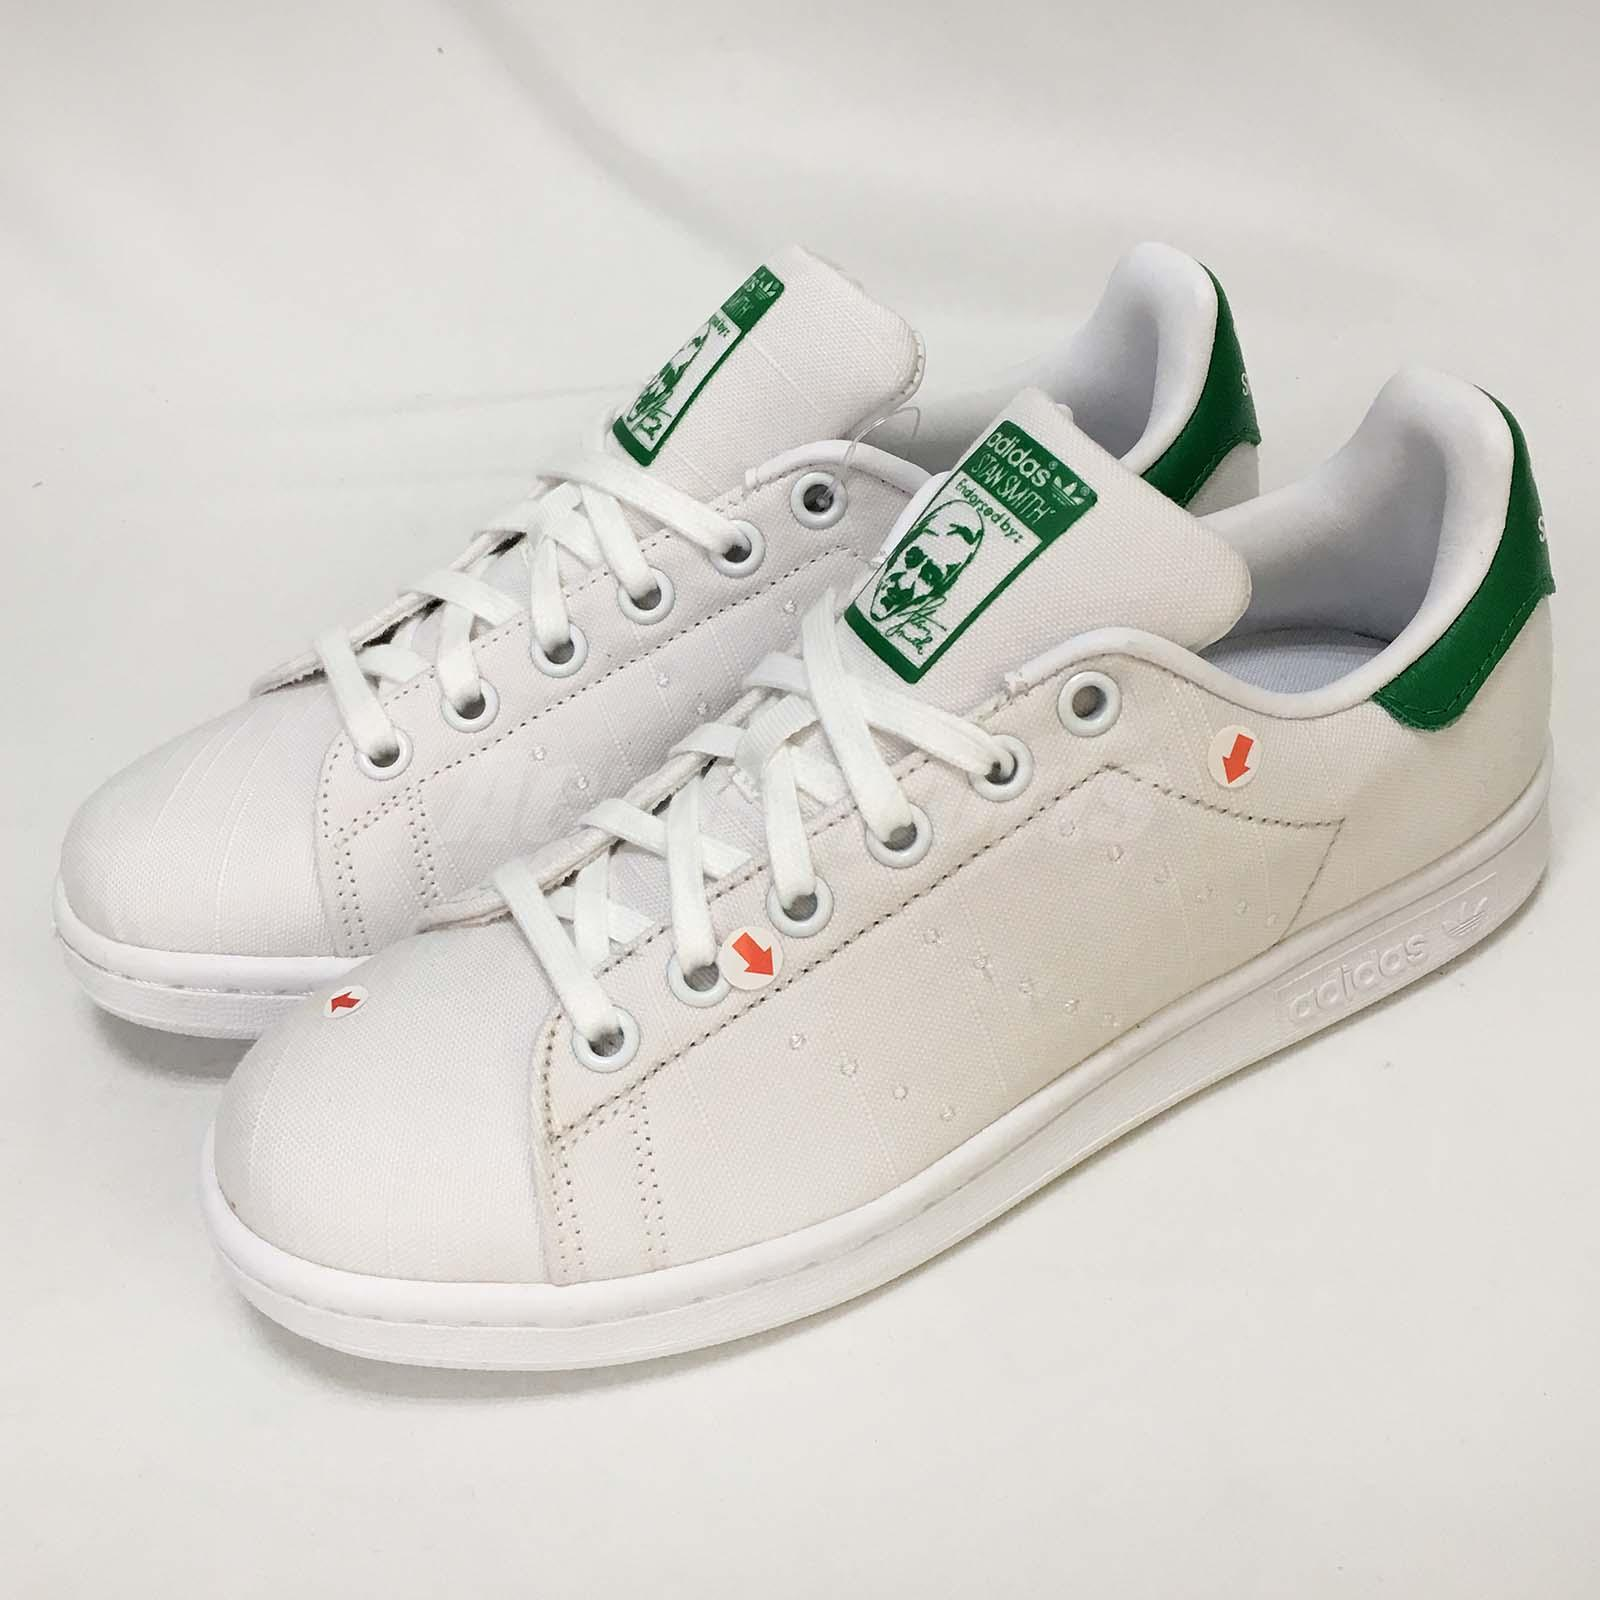 separation shoes 3ba1e 28544 Details about adidas Original Stan Smith W Both Feet With Serious Stain  Women Shoes S75560